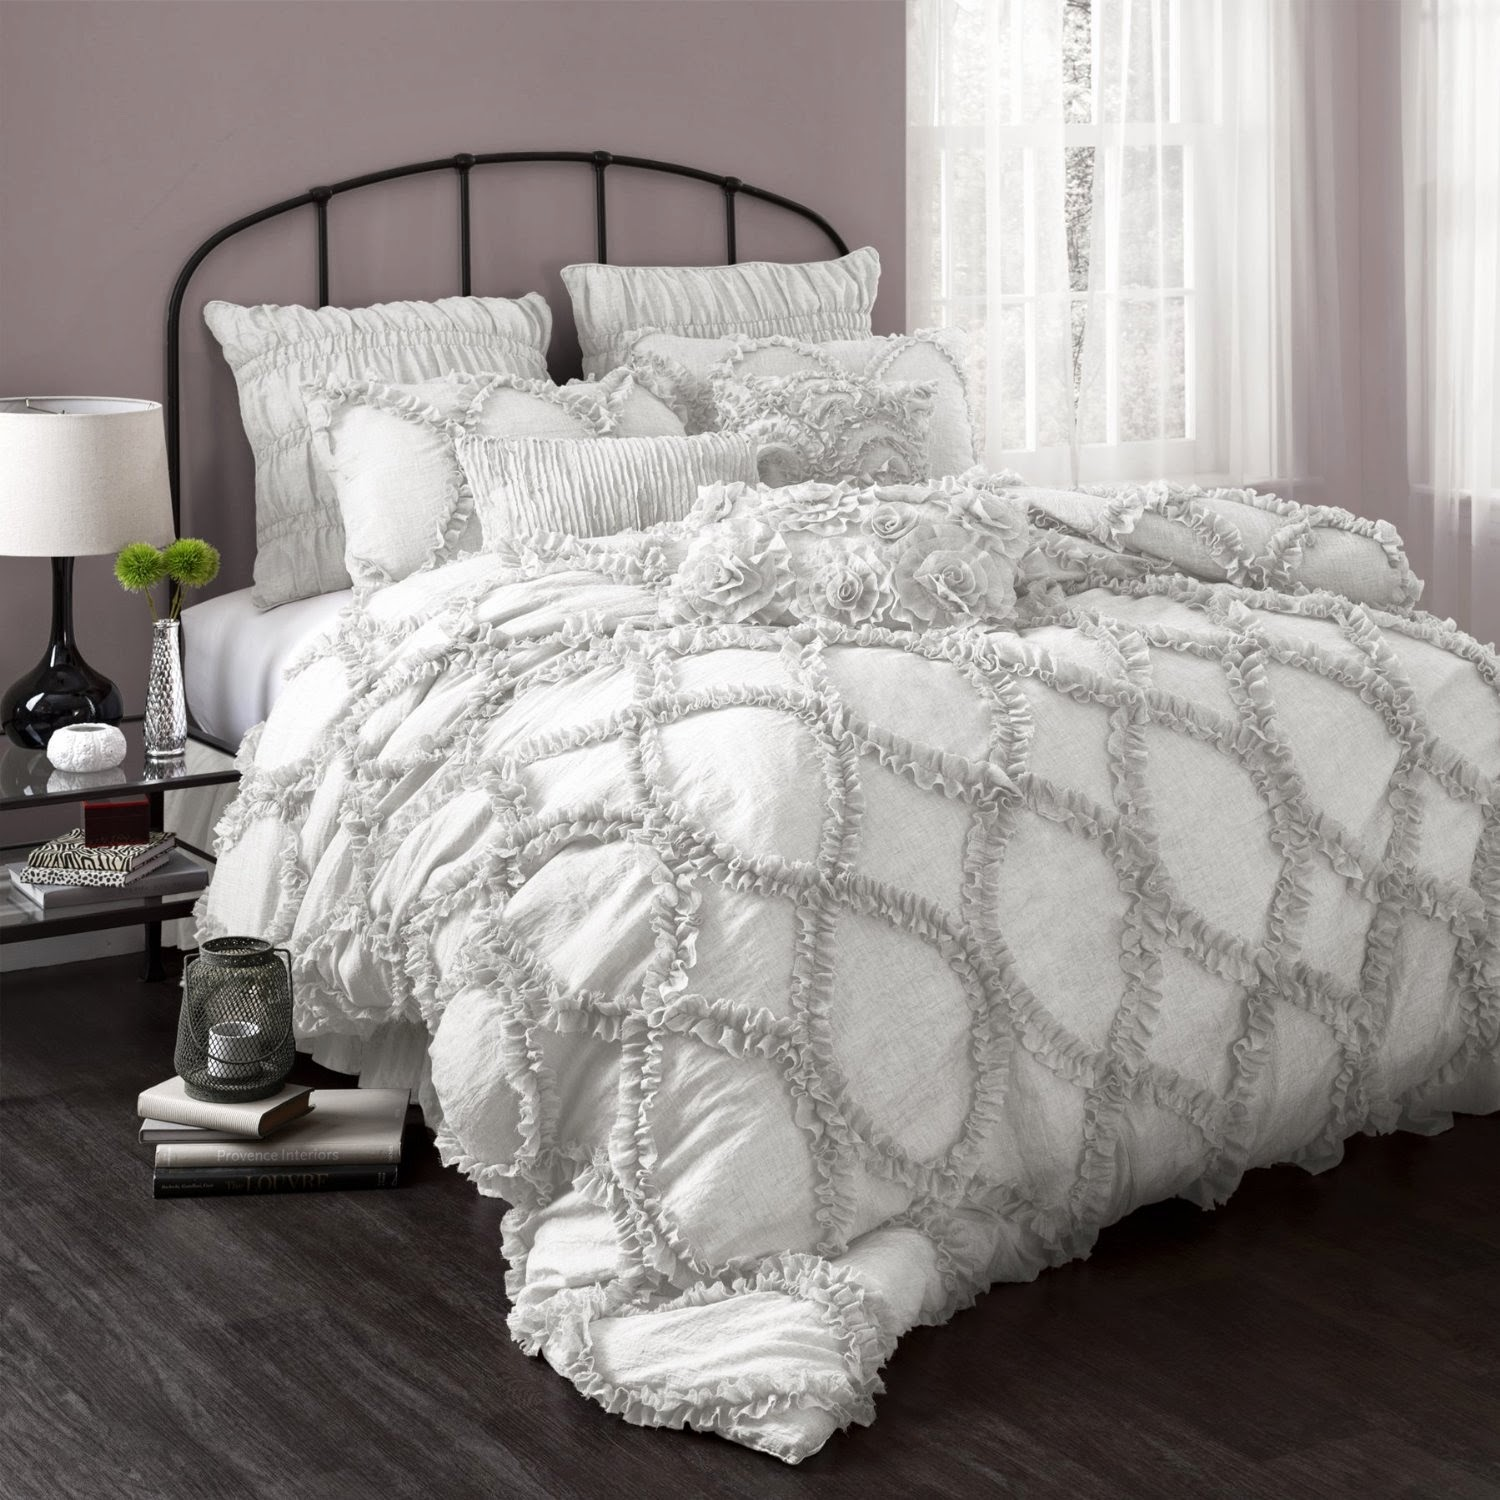 Bed sheets designs white - Bedding Sets That Won T Break The Budget Most Under 100